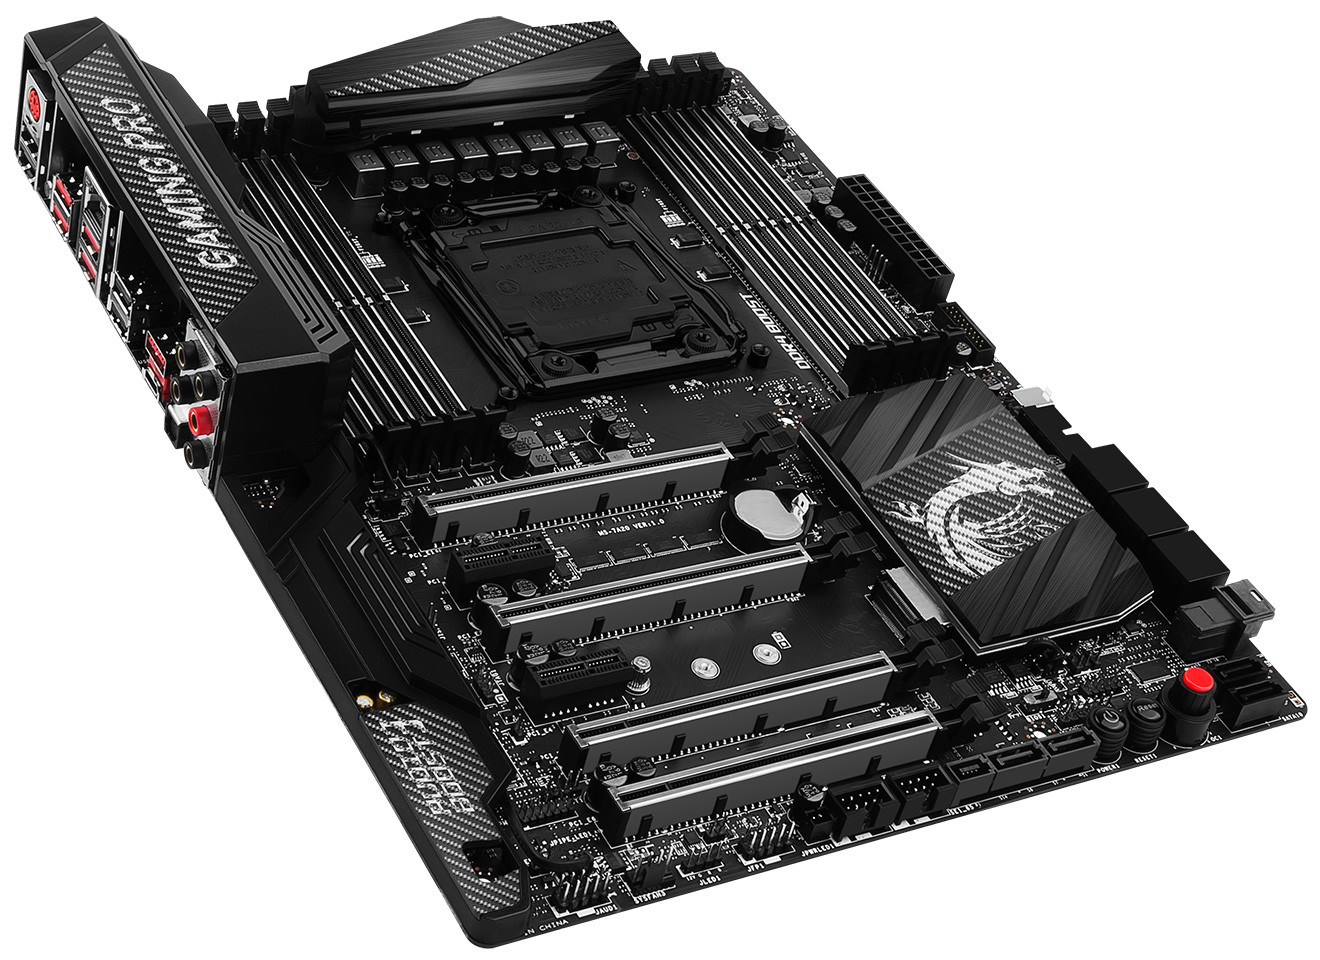 Msi Z270 Gaming Pro Carbon Hd Wallpaper: MSI Announces The X99A GAMING Pro Carbon Motherboard